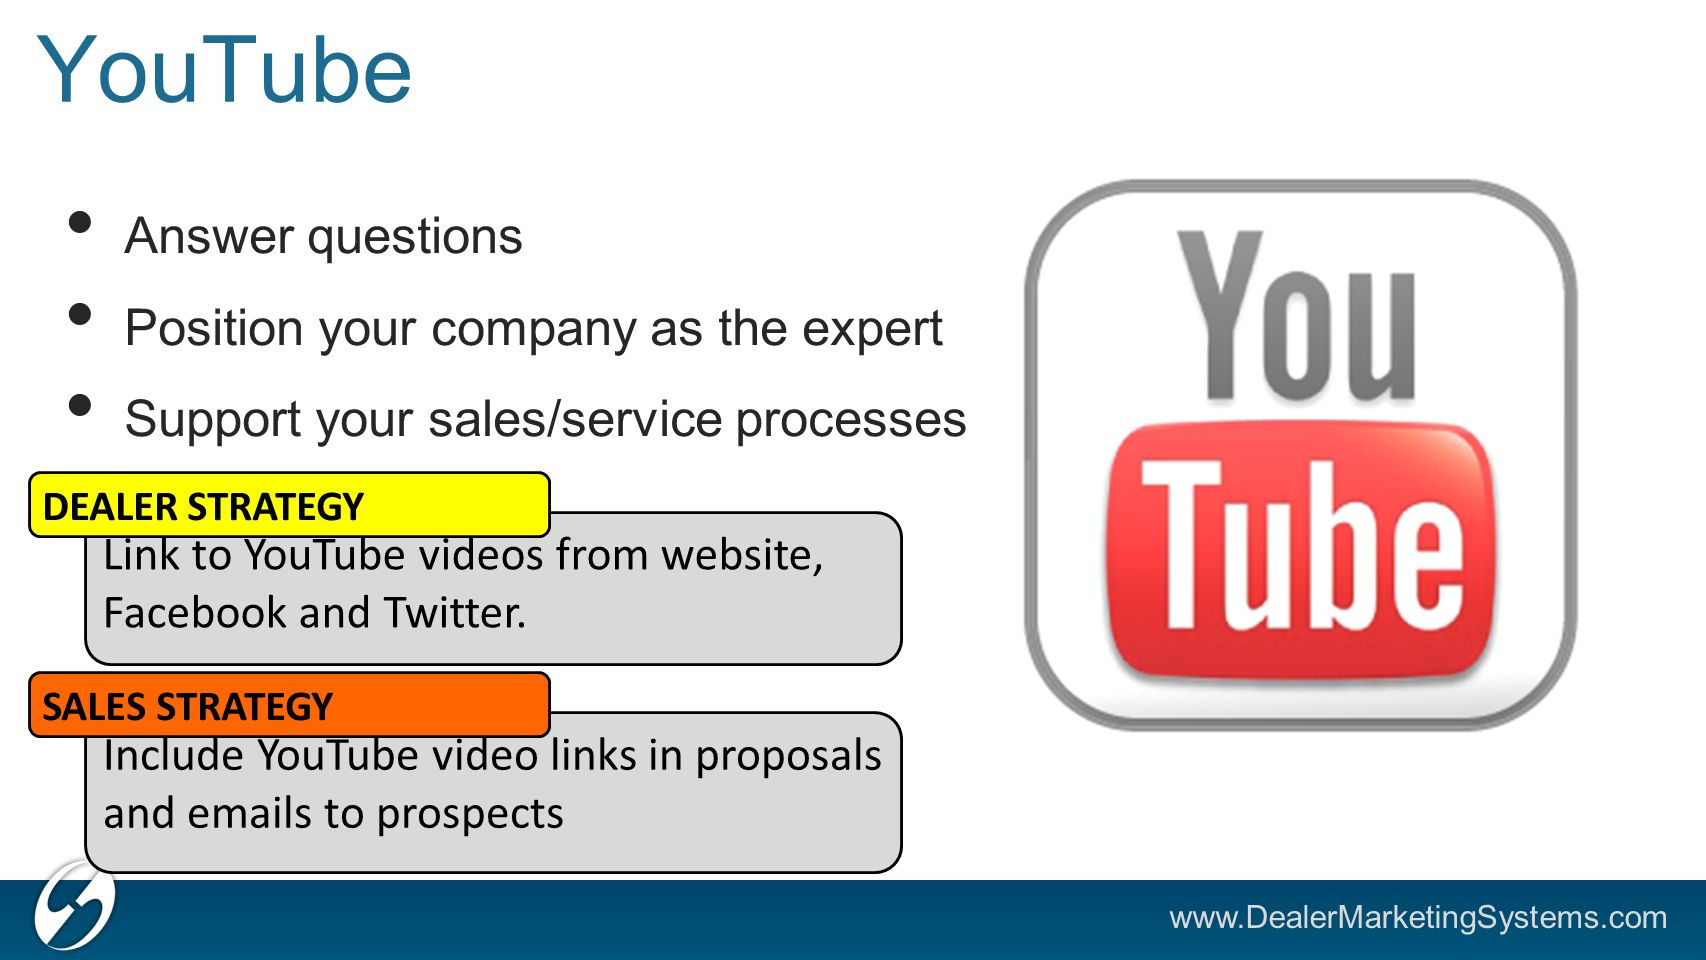 YouTube Answer questions Position your company as the expert Support your sales/service processes Link to YouTube videos from website, Facebook and Twitter.